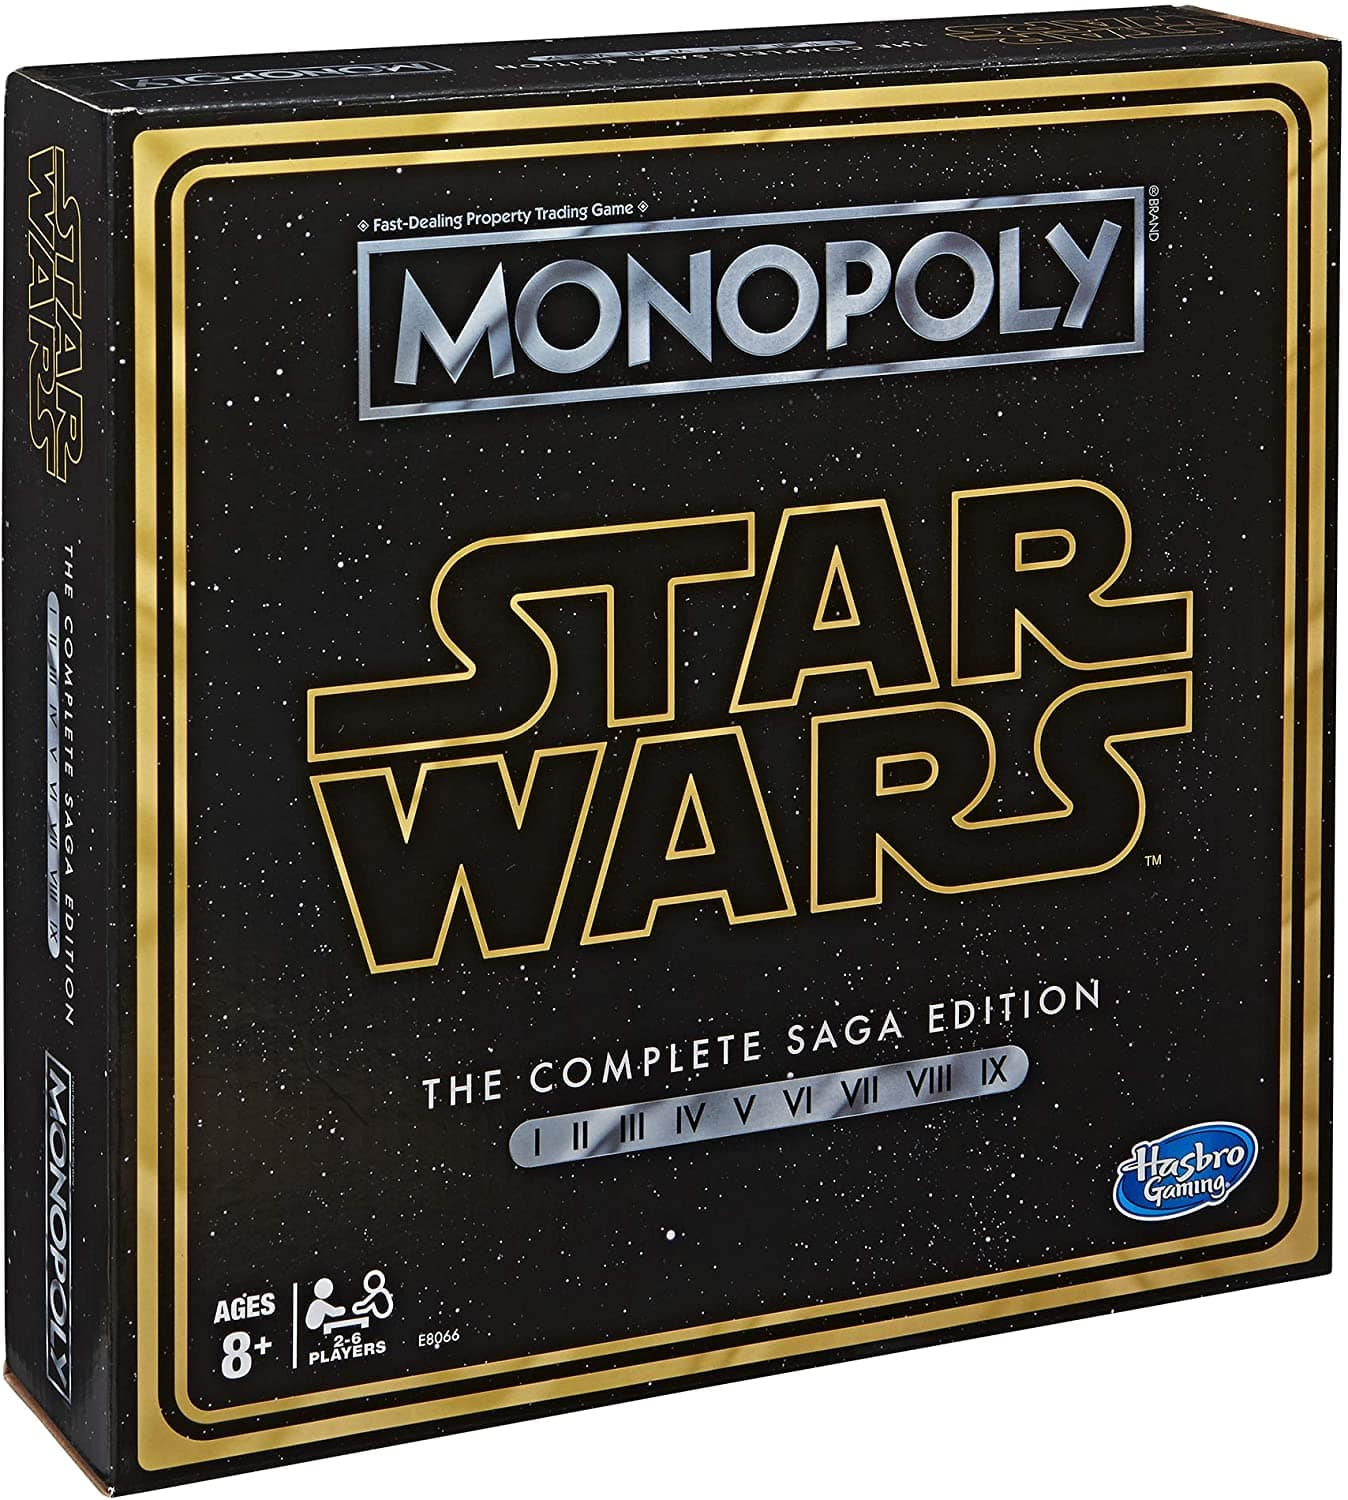 Monopoly: Star Wars Complete Saga Edition Board Game $20 + Free Shipping w/ Prime or orders $25+